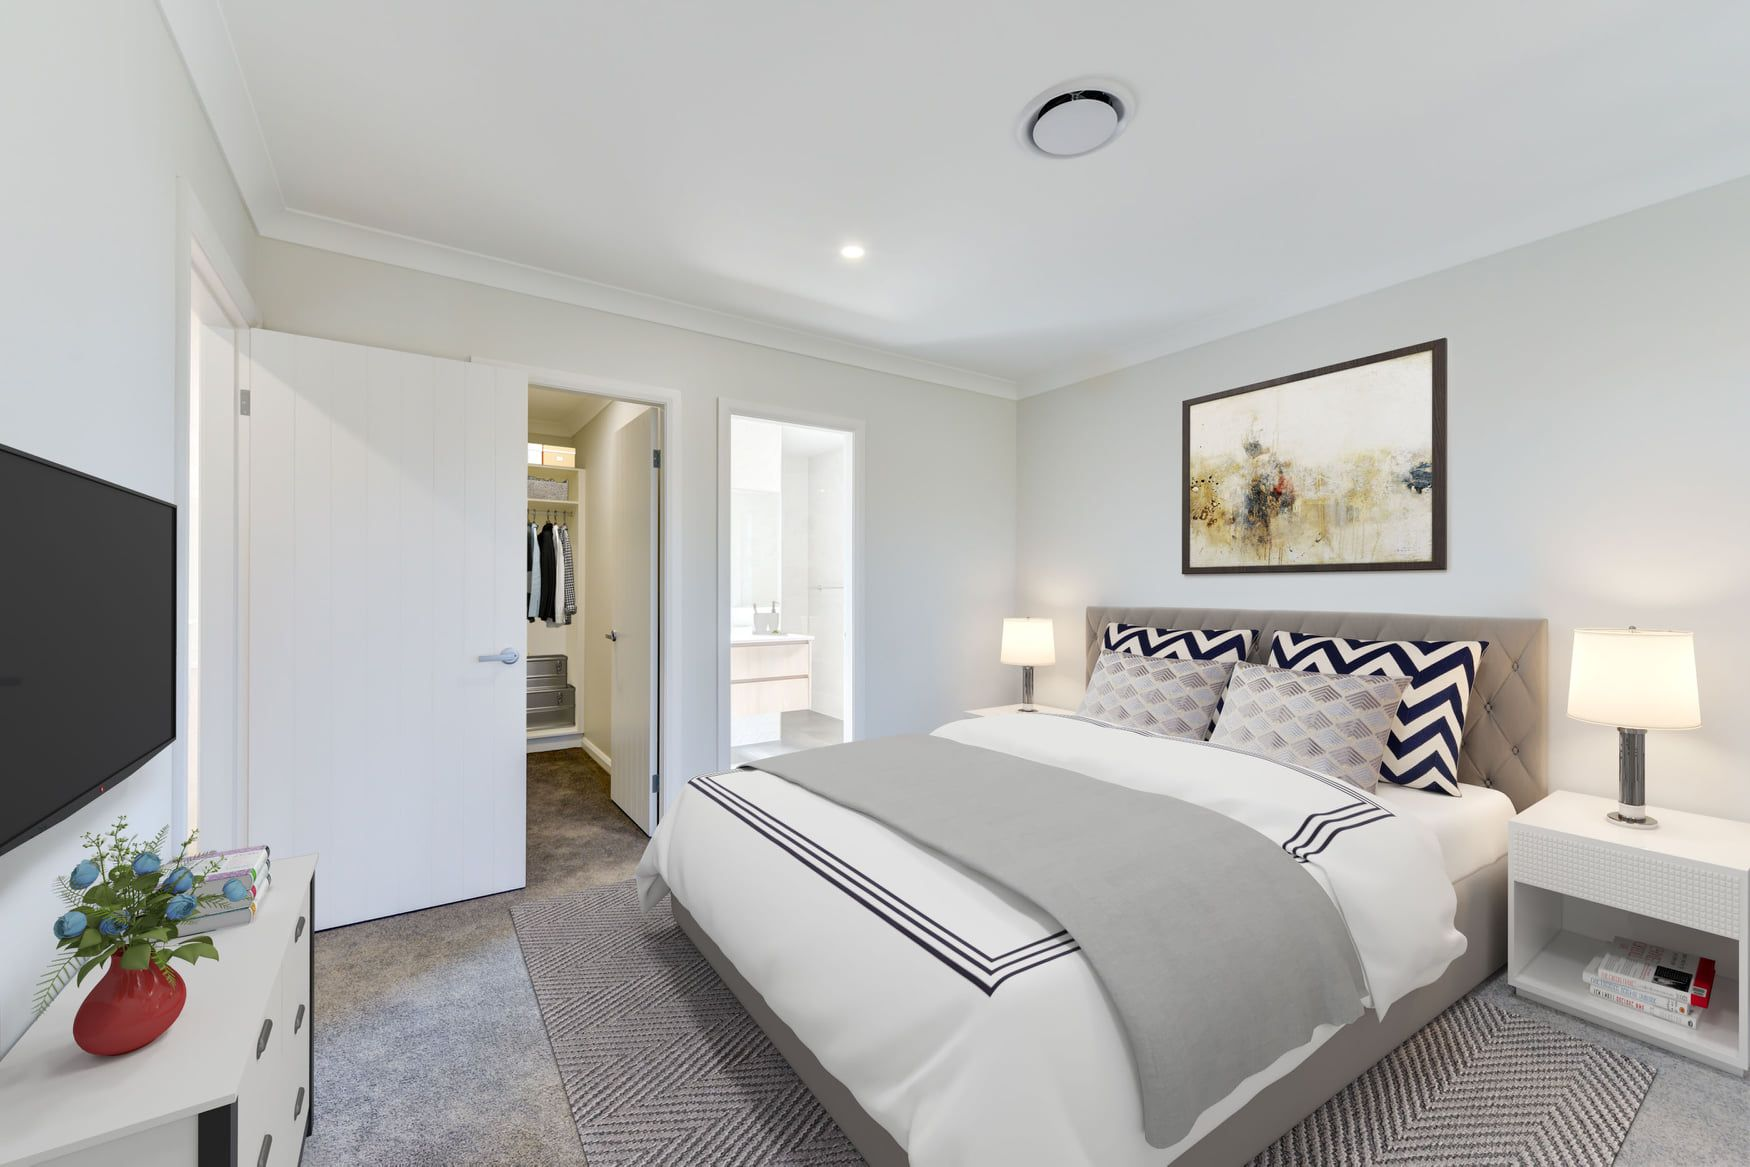 There's nothing quite like relaxing after a long week at work! ❤ #davidreidhomesaus #customhomebuilders #customdesigned #bedroominspiration #dreamhome #relax #workweekdone #custombuilders